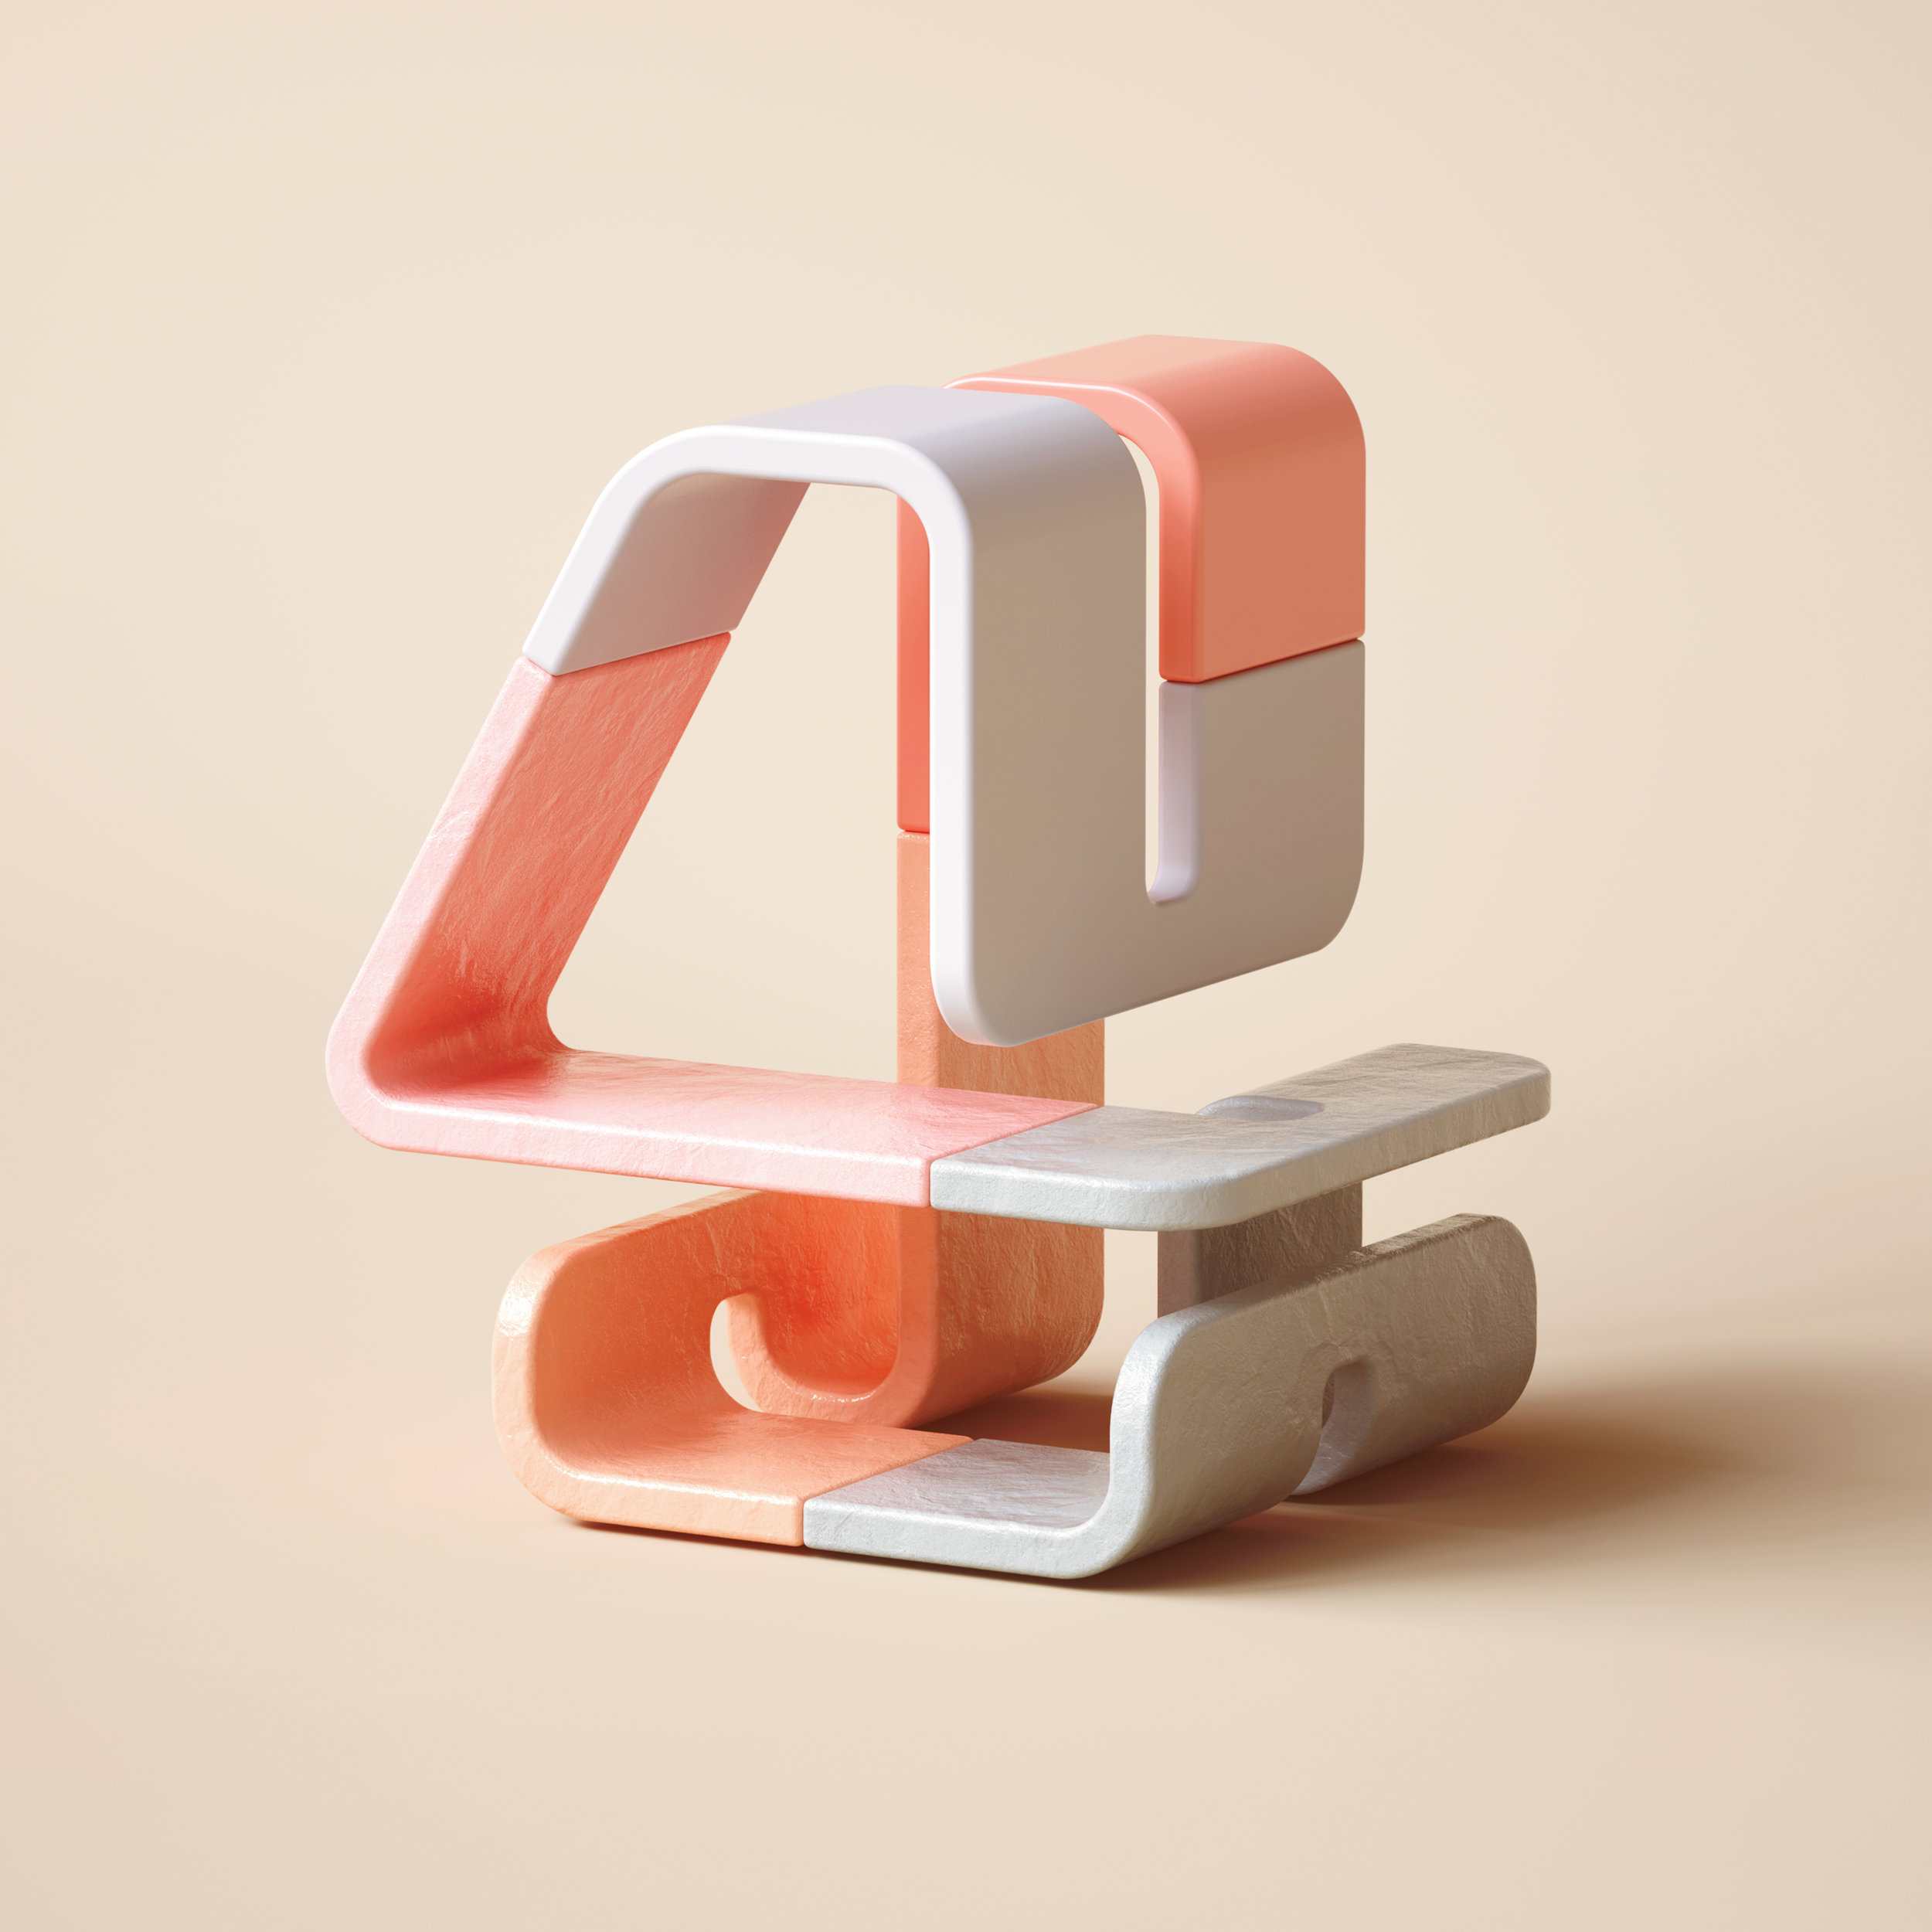 36 Days of Type 2019 - 3D Typeform number 4 visual.